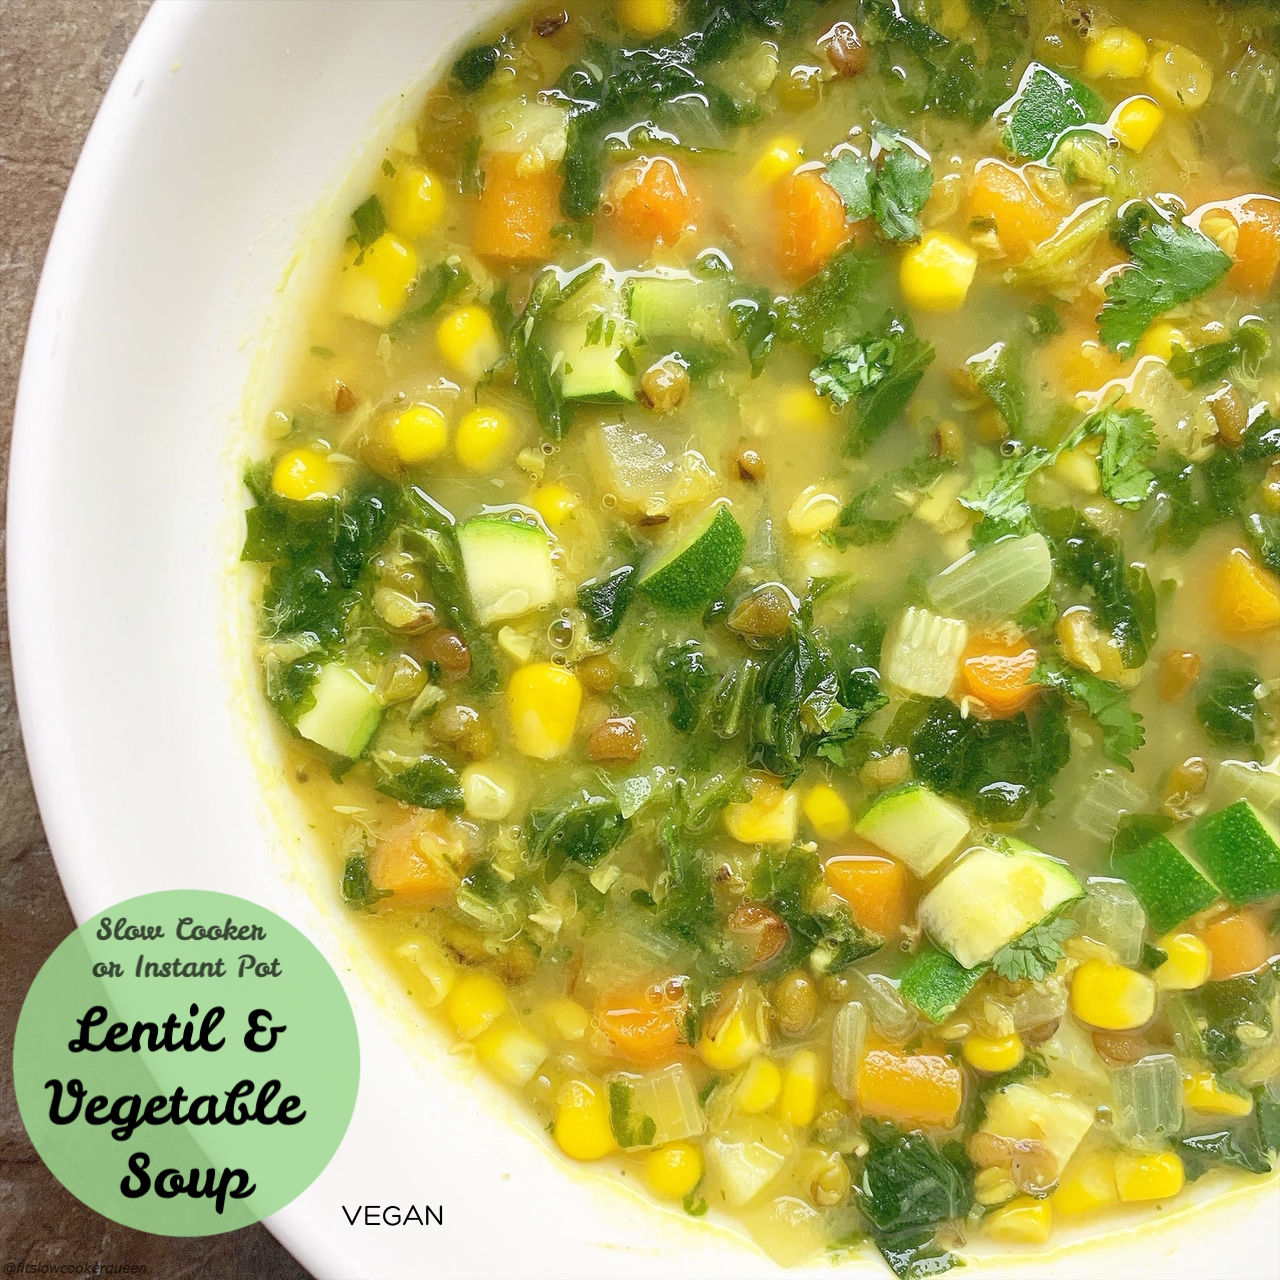 Slow Cooker Instant Pot Lentil Vegetable Soup Vegan Fit Slow Cooker Queen